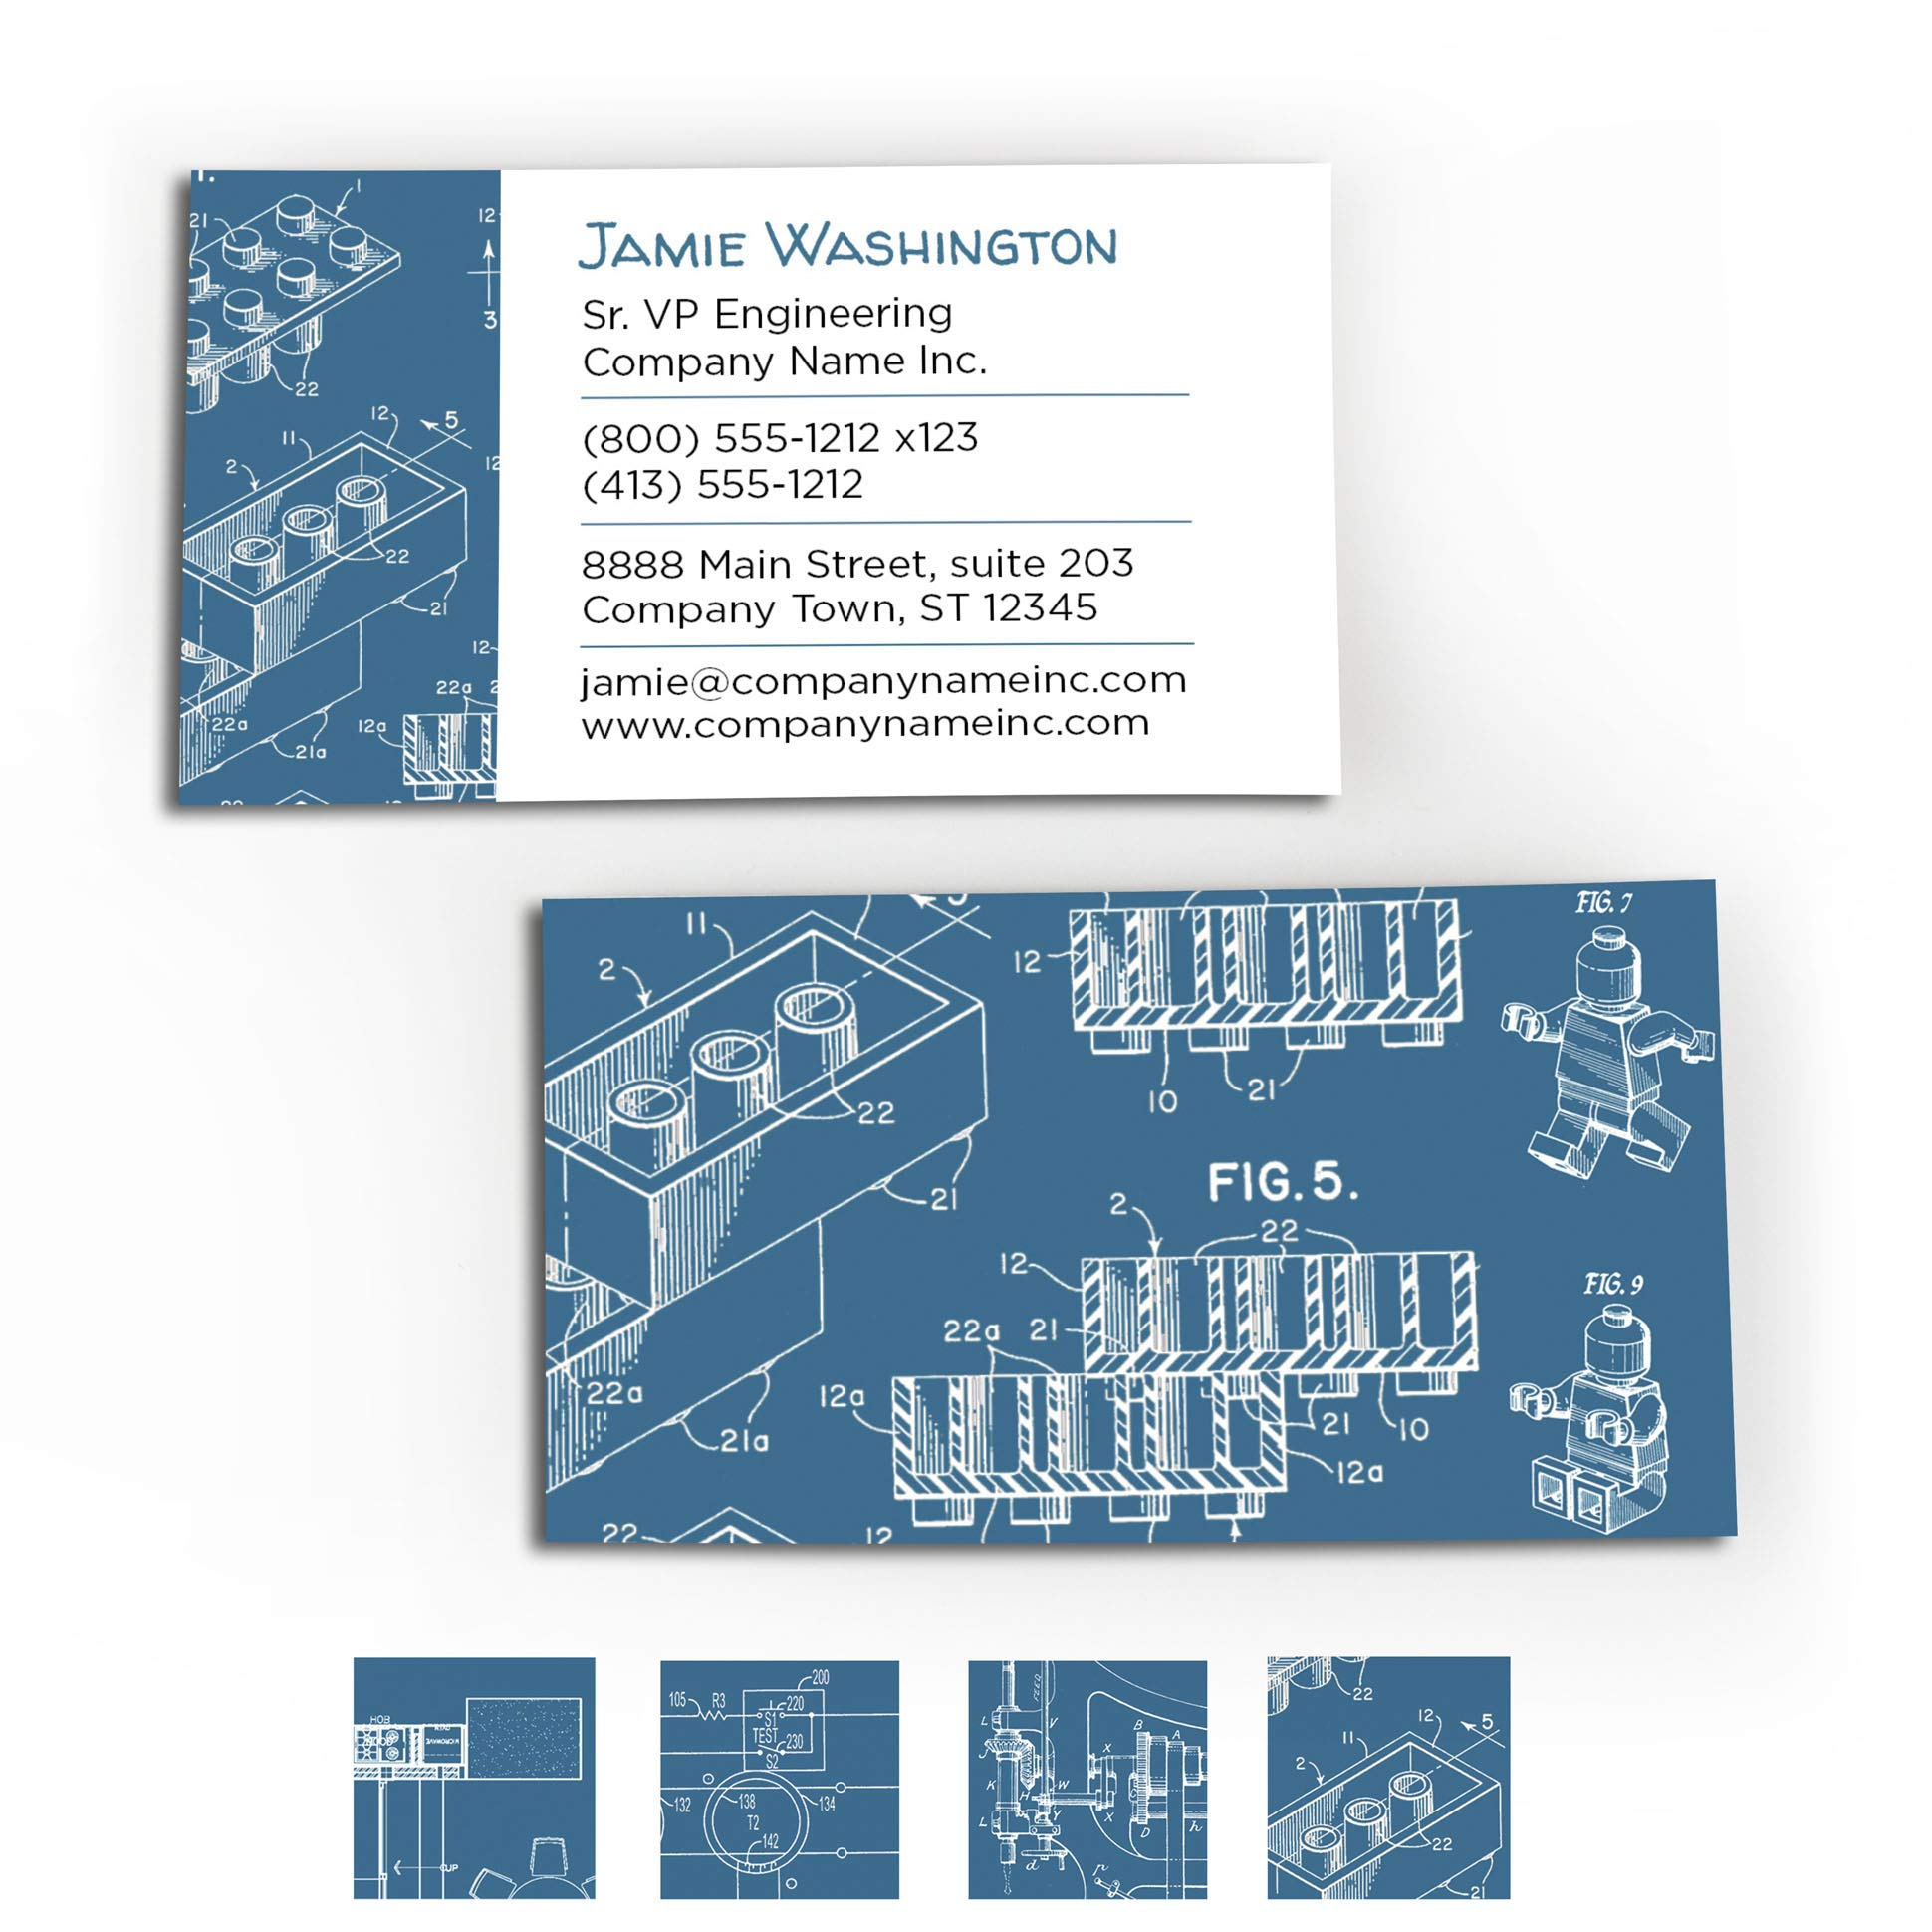 Buttonsmith Custom Ultra Thick Printed Business Cards - 3.5''x2'' - Quantity 500 - Double-Sided, 32 pt Smooth Touch Black Edge - Blueprints Appointment - Made in The USA